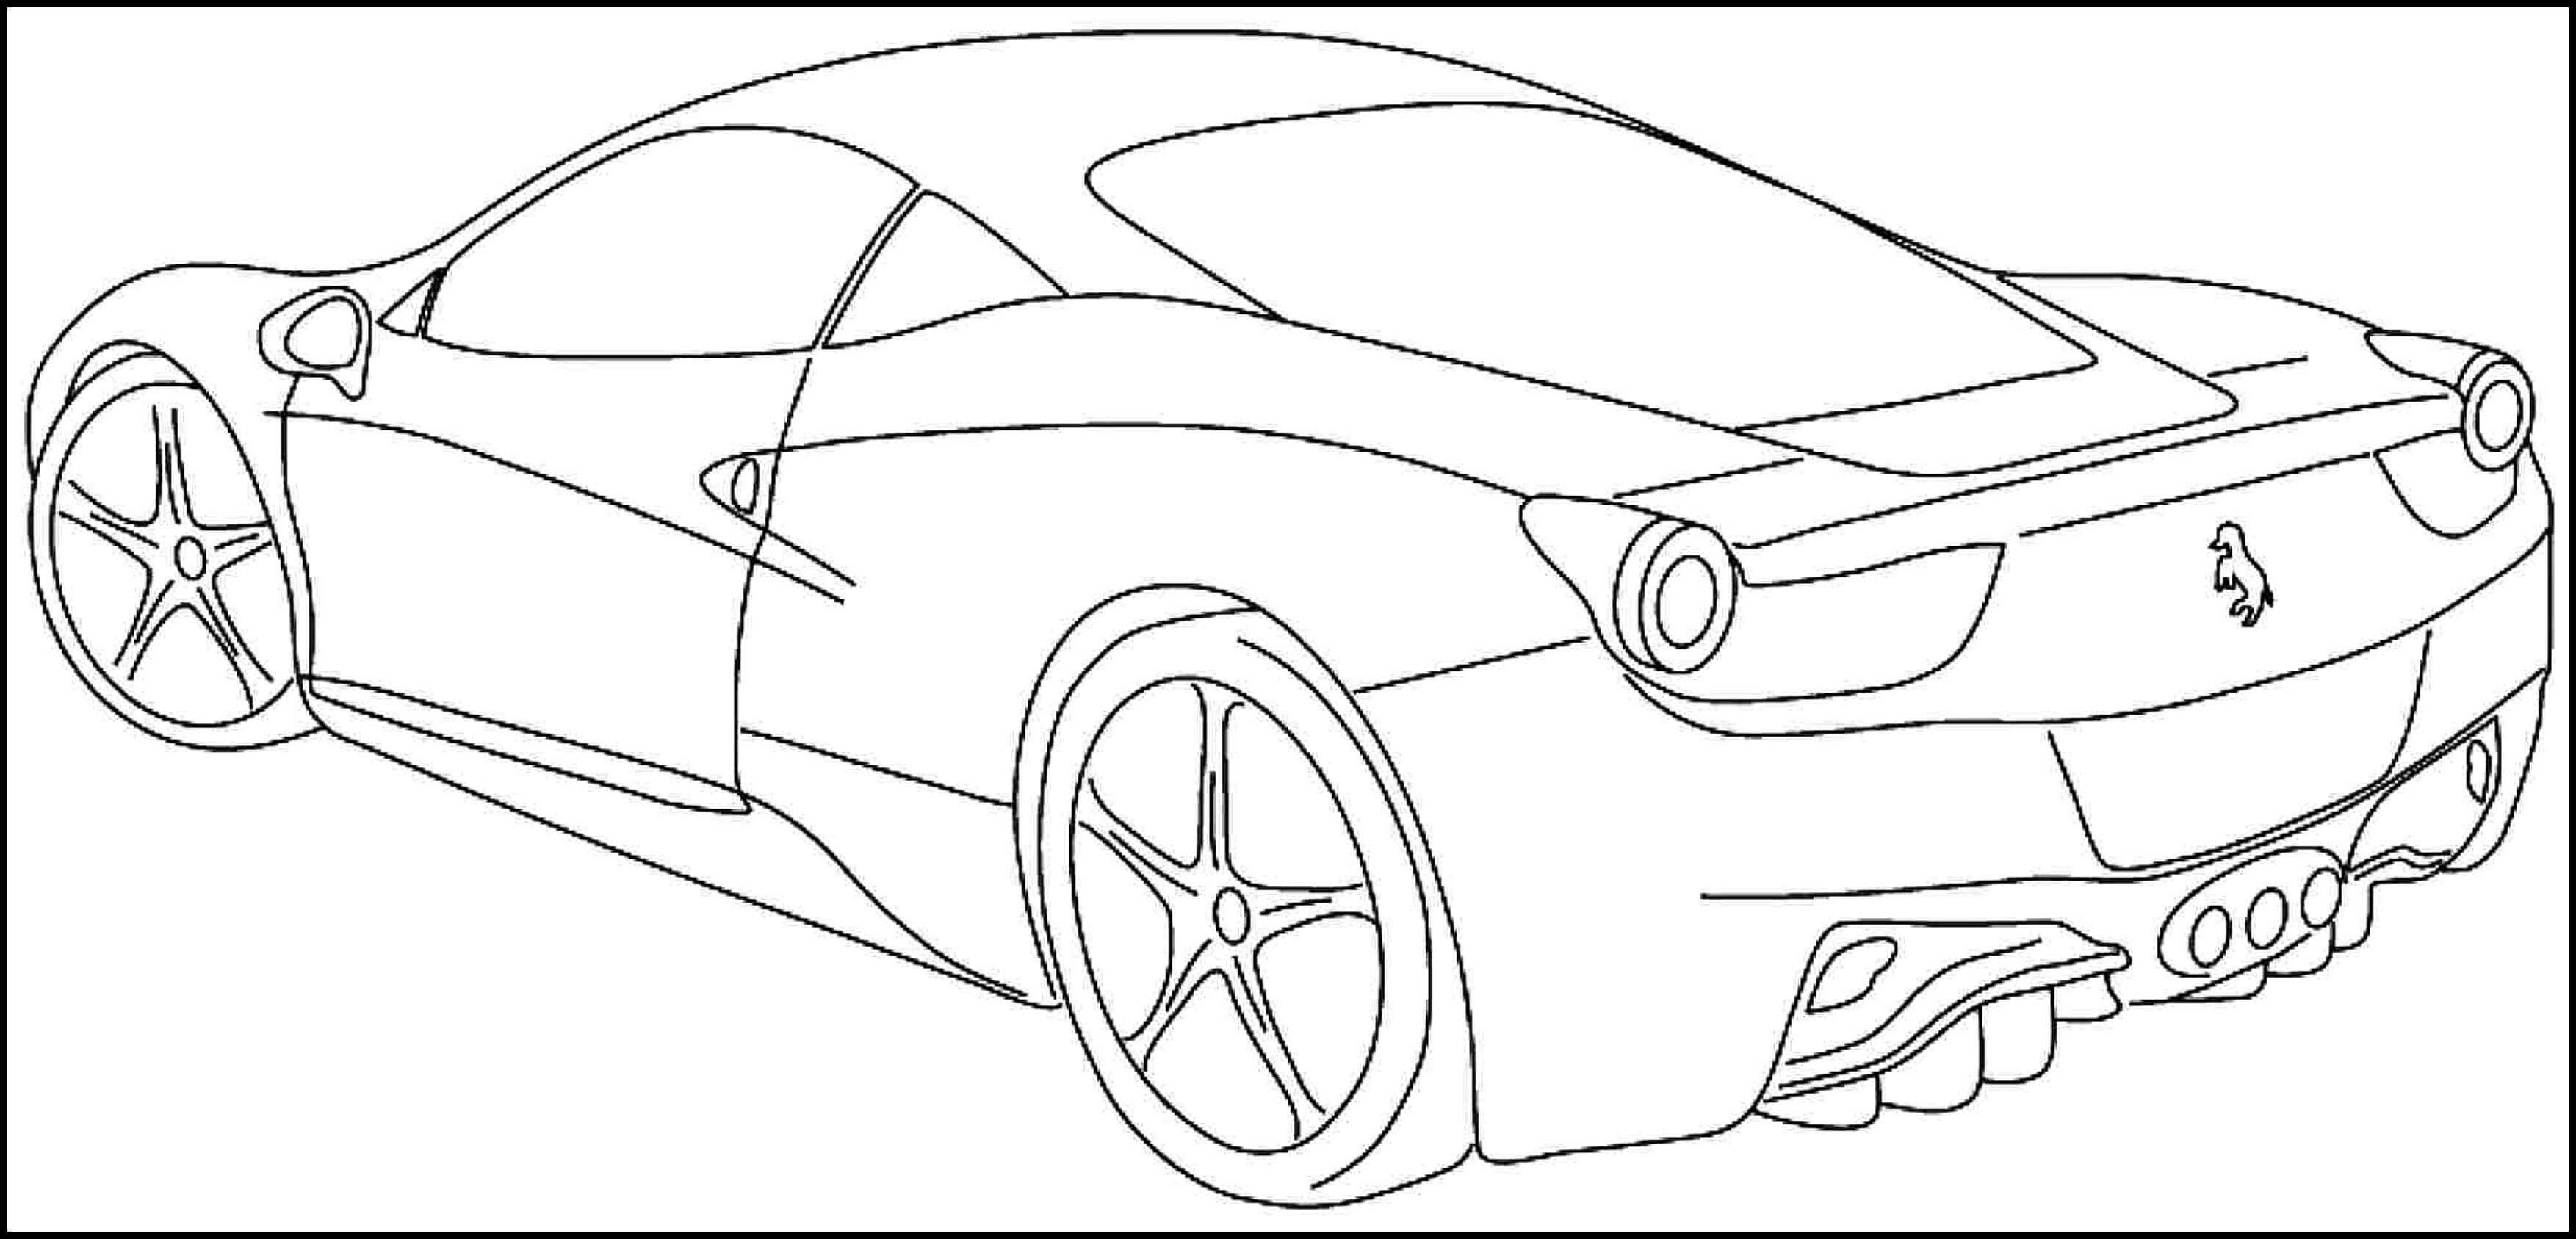 Car Coloring Pages - Best Coloring Pages For Kids | 1687x3507